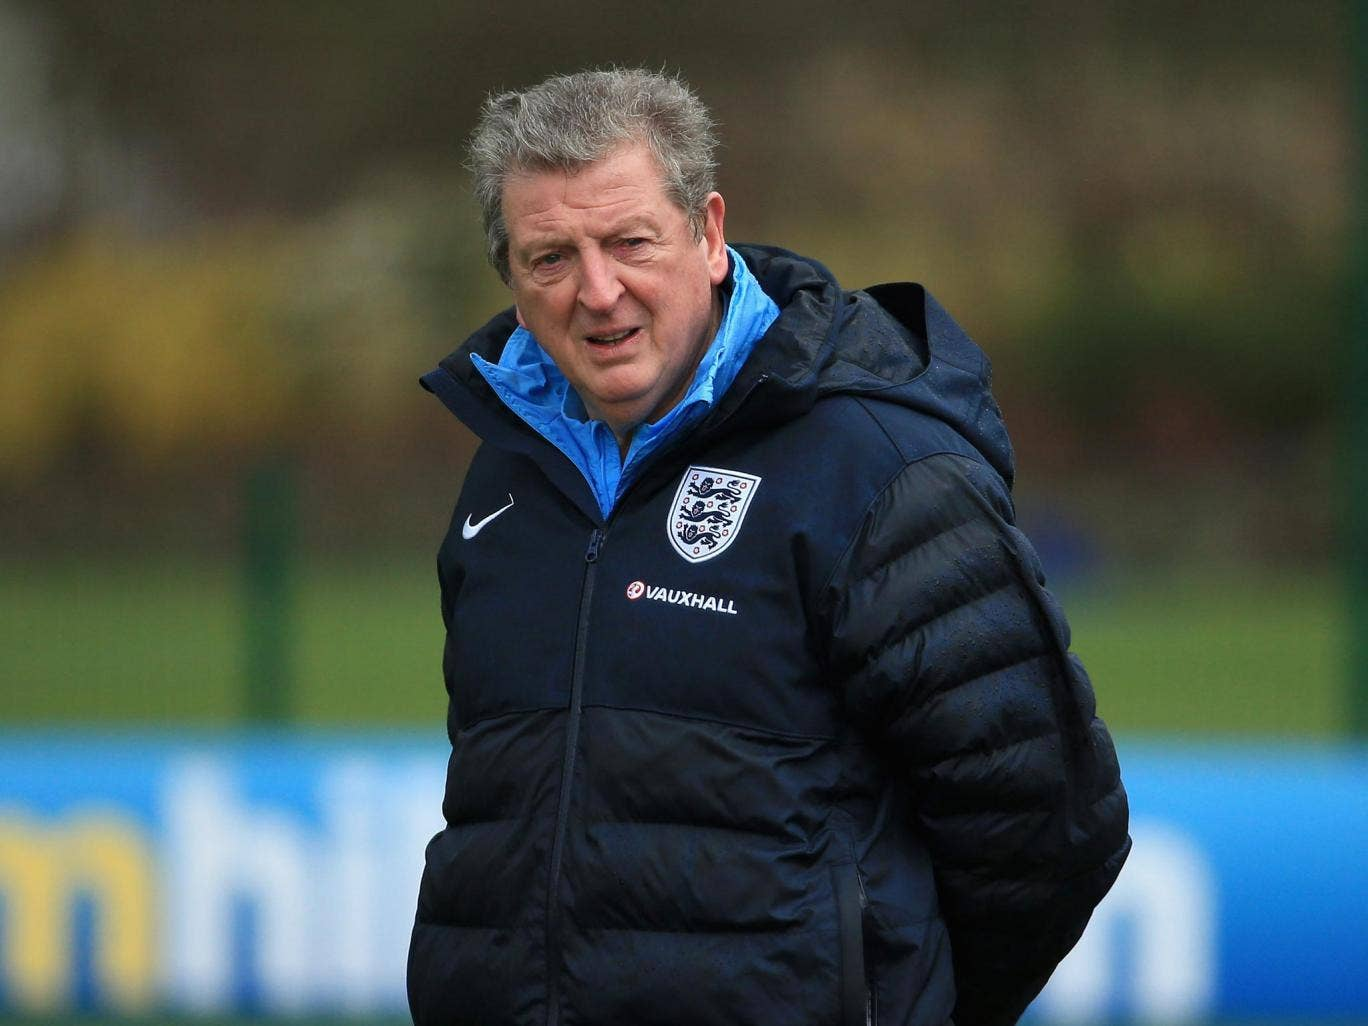 Roy Hodgson has confirmed that Dr Steven Peters will be tasked with preparing the England side for the World Cup after being named their sports psychiatrist